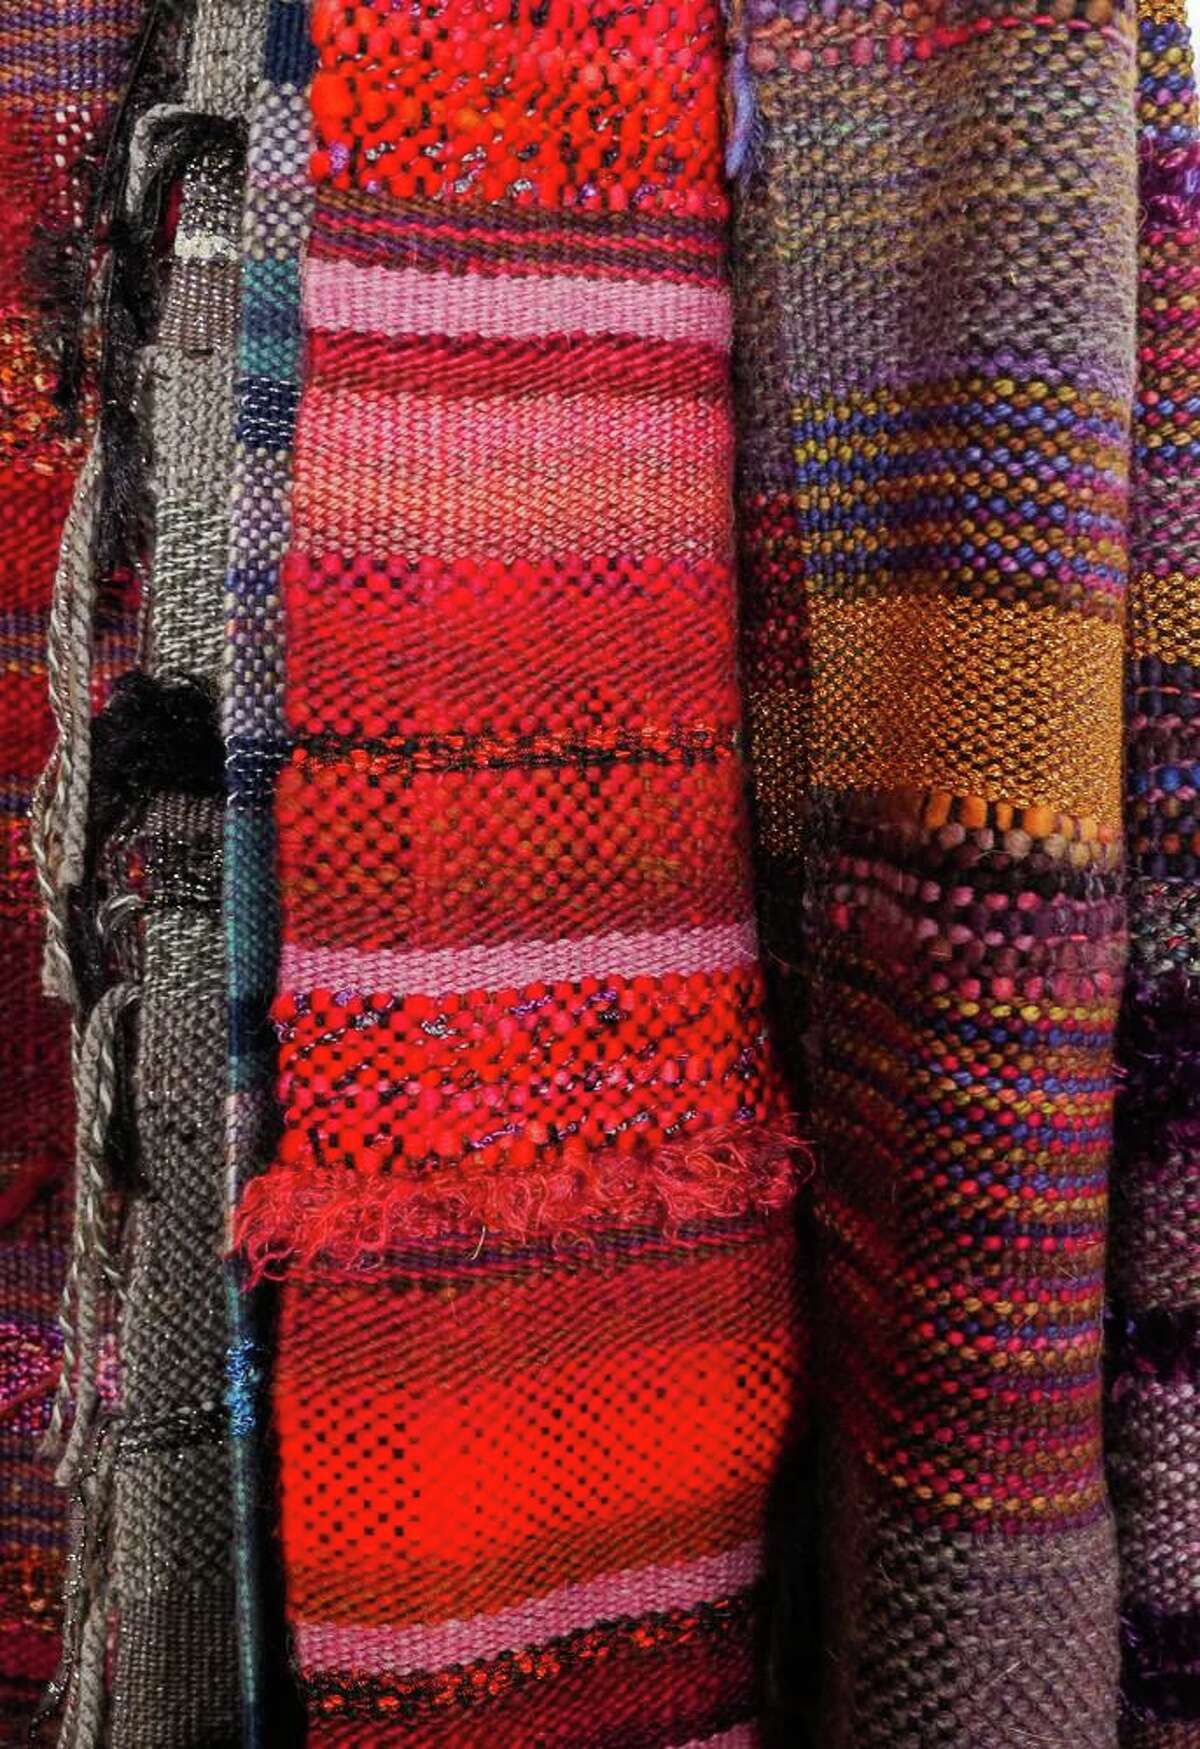 """Wool scarves by Leigh Graham, seen here, are among the handcrafted items on display at Gallery 25 in New Milford. There's pottery, paintings, photographs, jewelry, fused glass platters and more. The gallery is seeking artists for """"When the Snow Flies,"""" and through Jan. 9 will be giving away canvases, watercolor paper and pastel paper to visitors who would like to participate in its """"Spring Emergence"""" show. There's no fee to enter your creation."""